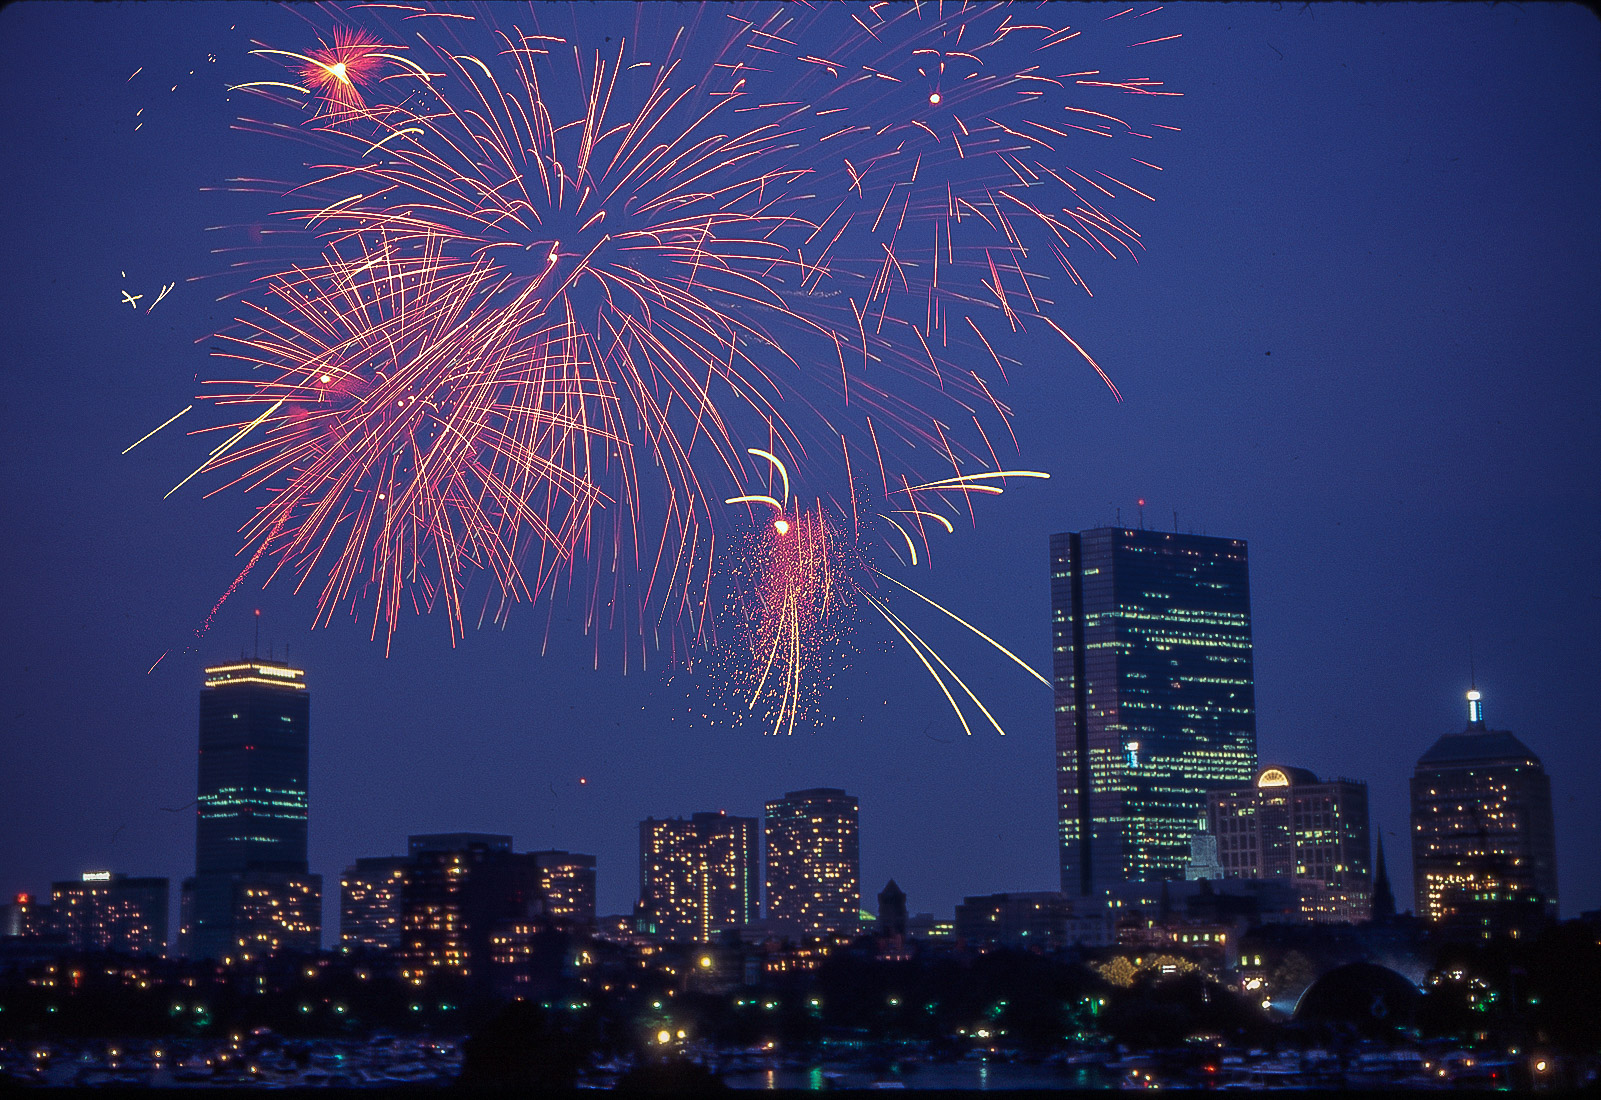 Nighttime Fireworks Panorama Photo of Boston showing Back Bay